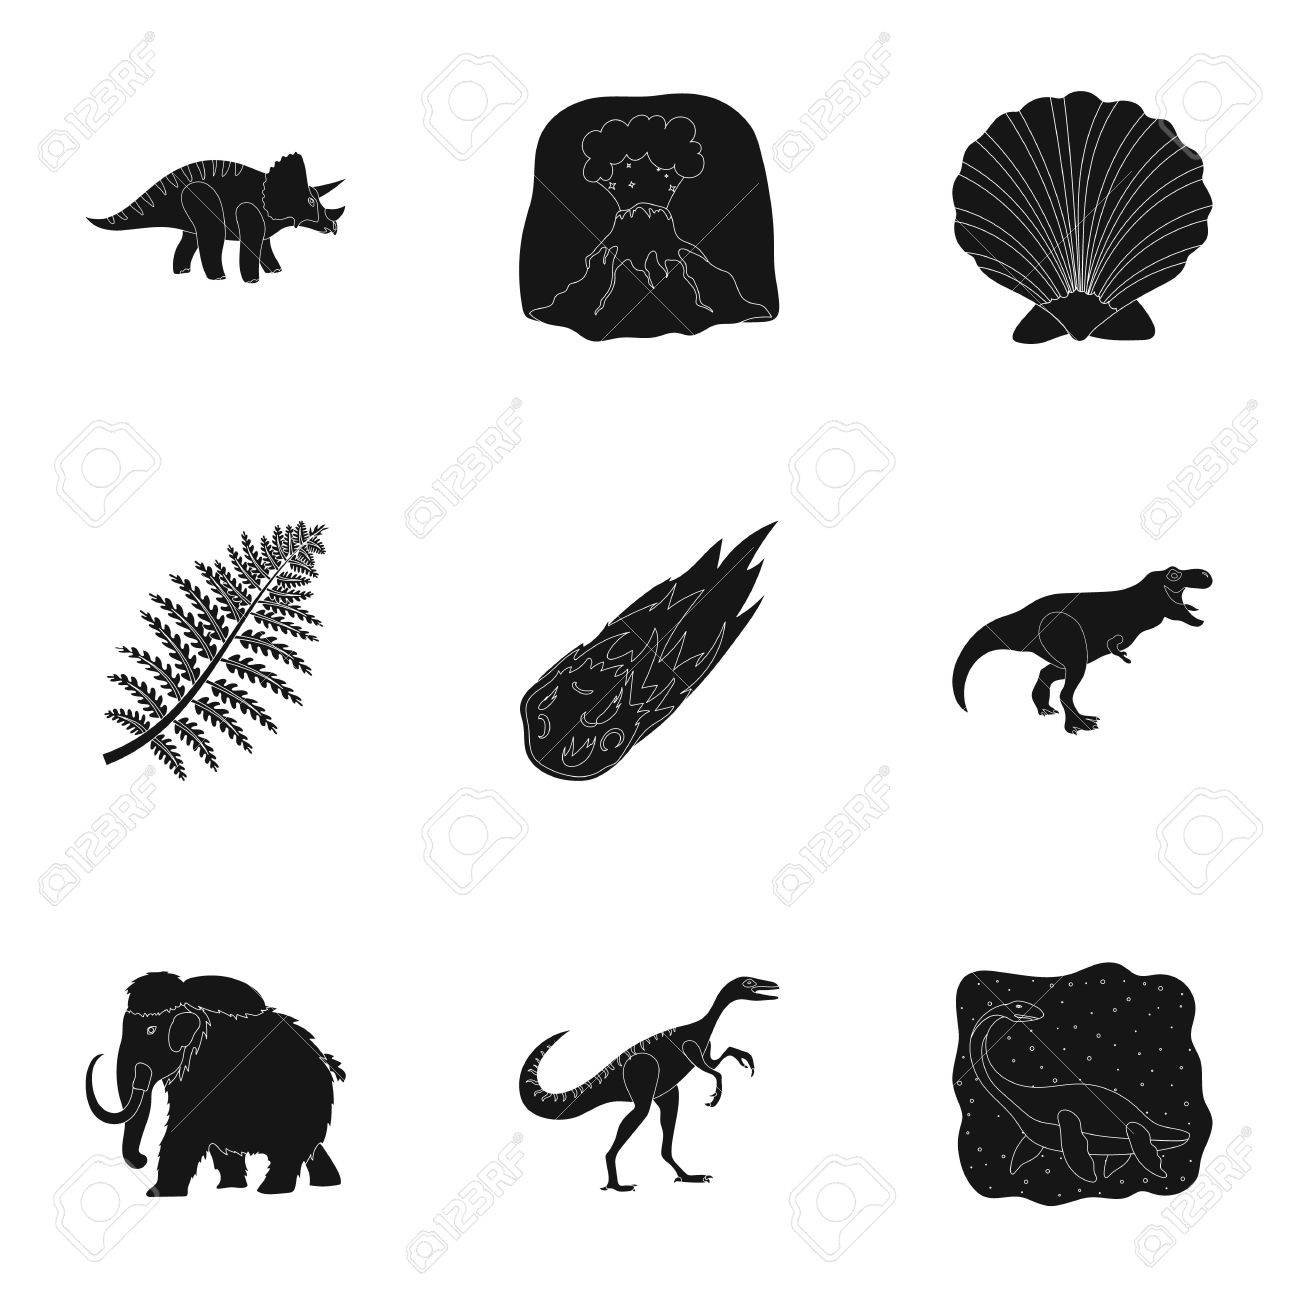 Image of: Fauna Ancient Extinct Animals And Their Tracks And Remains Dinosaurs Tyrannosaurs Pnictosaursdinisaurs 123rfcom Ancient Extinct Animals And Their Tracks And Remains Dinosaurs